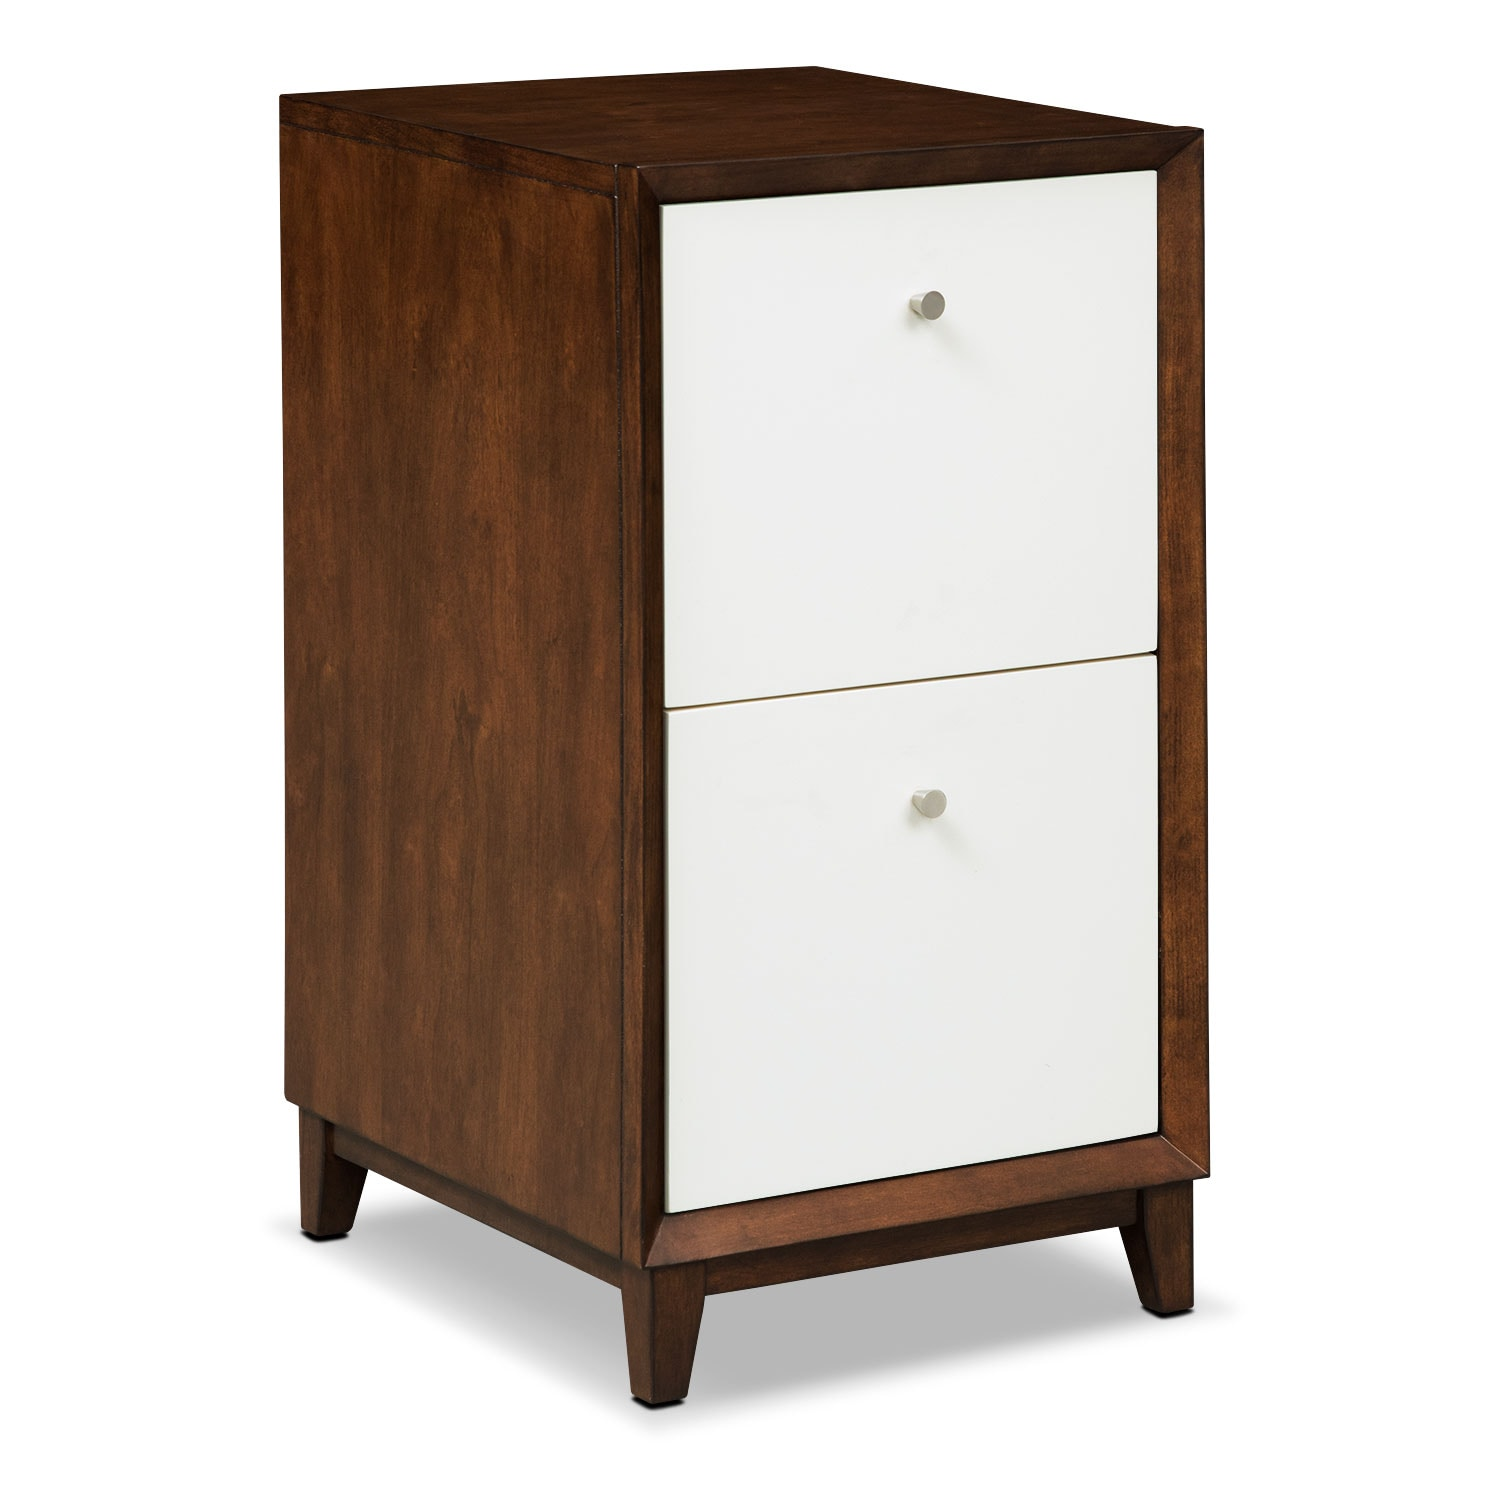 Home Office Furniture - Oslo White 2-Drawer File Cabinet